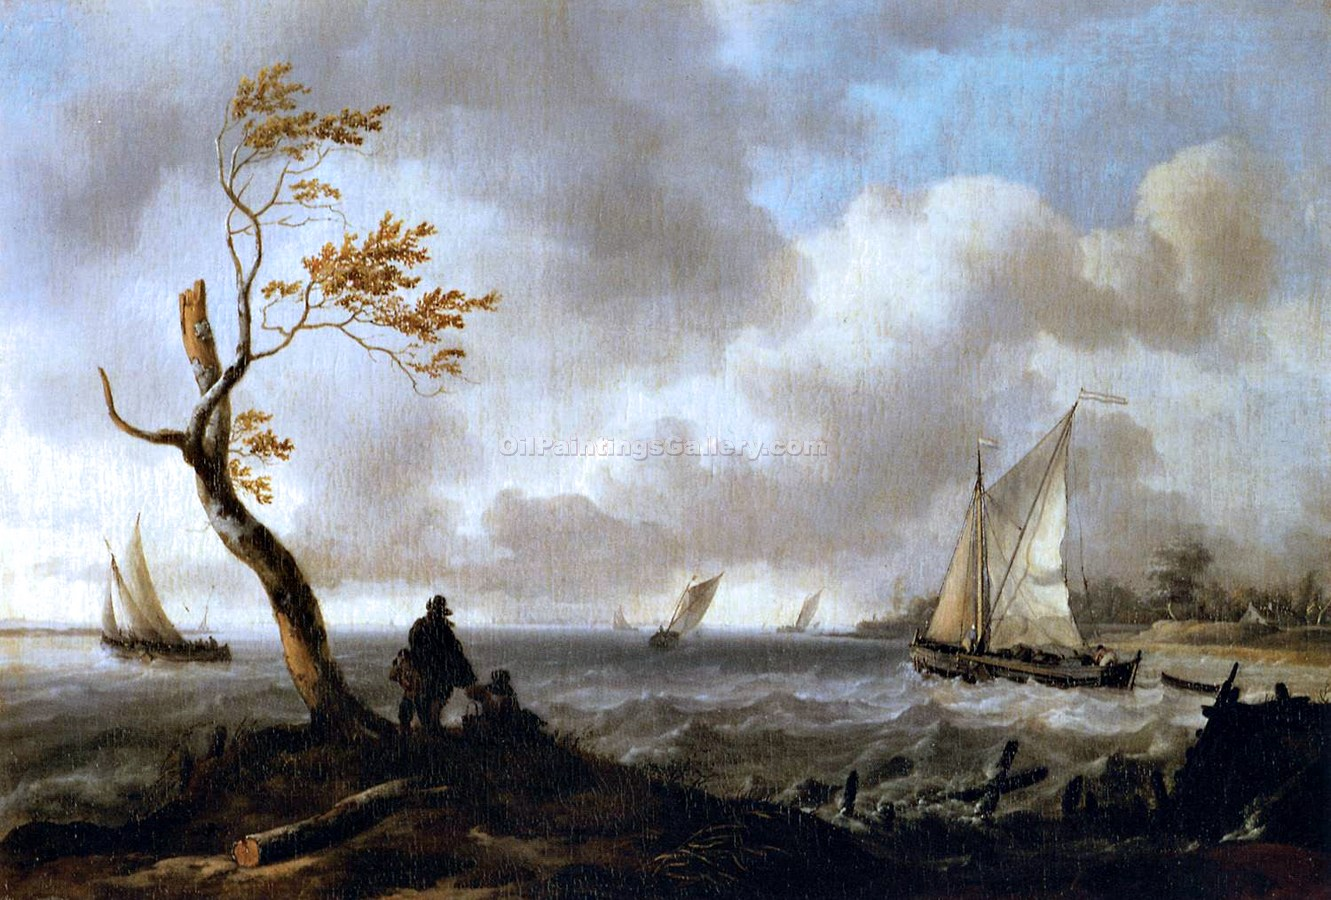 Fishing Boats and Coasting Vessel in Rough Weather by Ludolf Backhuysen | Best Online Art Gallery - Oil Paintings Gallery